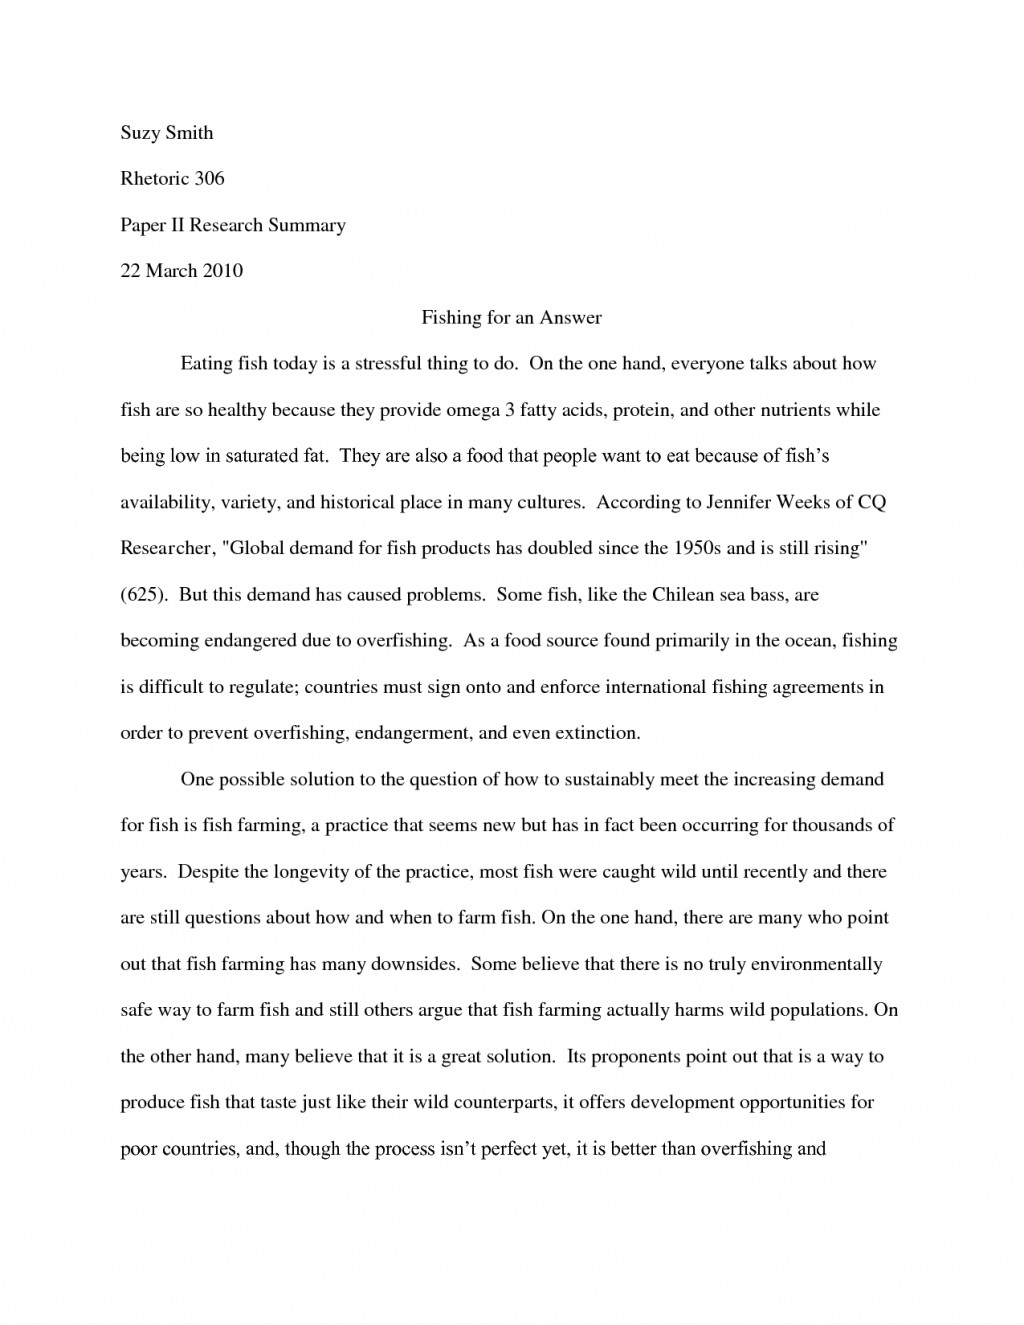 010 Research Paper Summary Sample 551059 How To Write Phenomenal A Good Conclusion And Recommendation Of Synopsis For Large